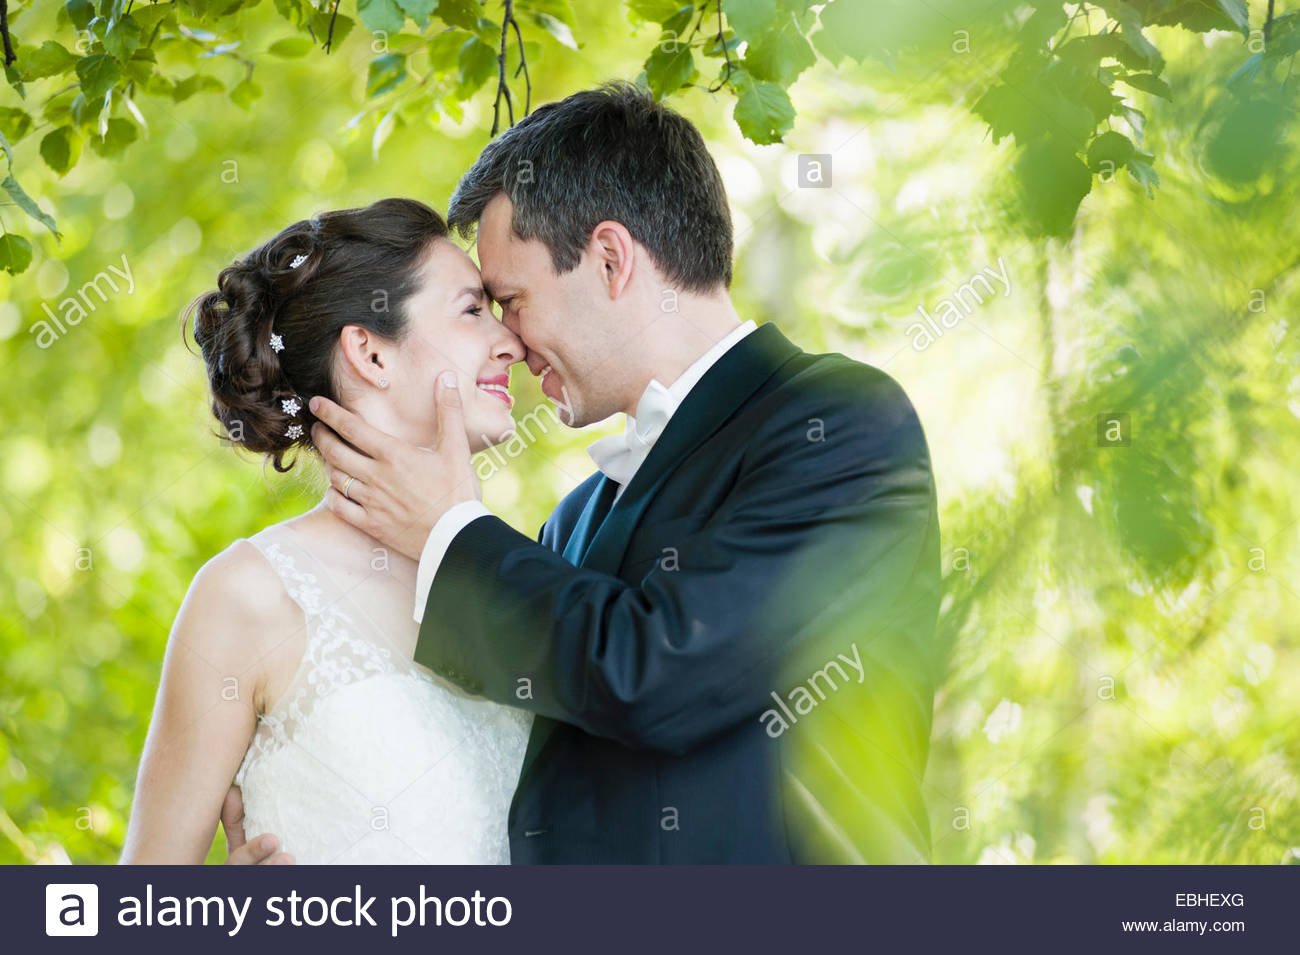 Romantic newlywed mid adult couple face to face in park foliage - Stock Image